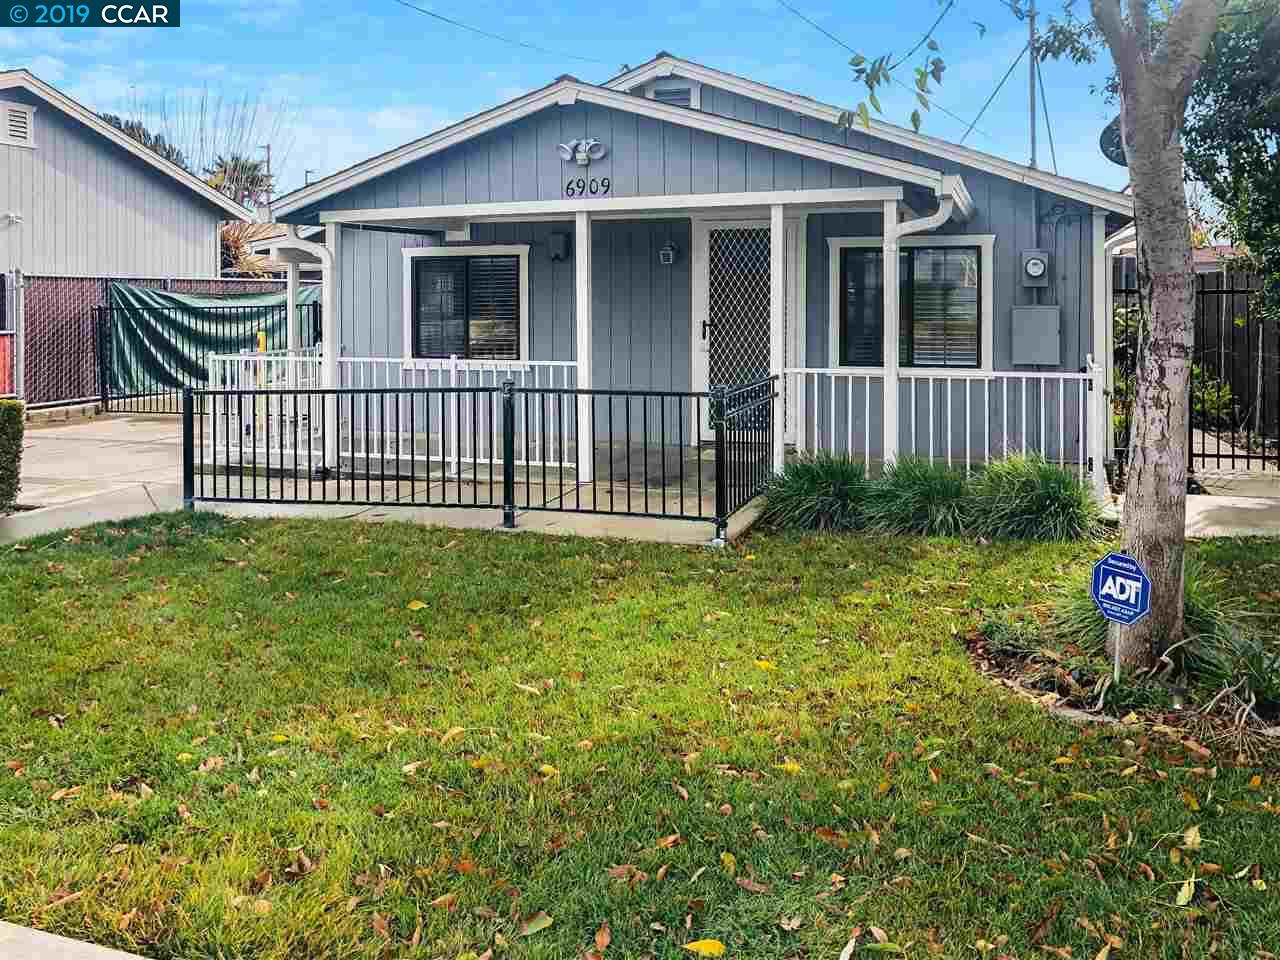 6909 Brentwood Blvd, BRENTWOOD, CA 94513